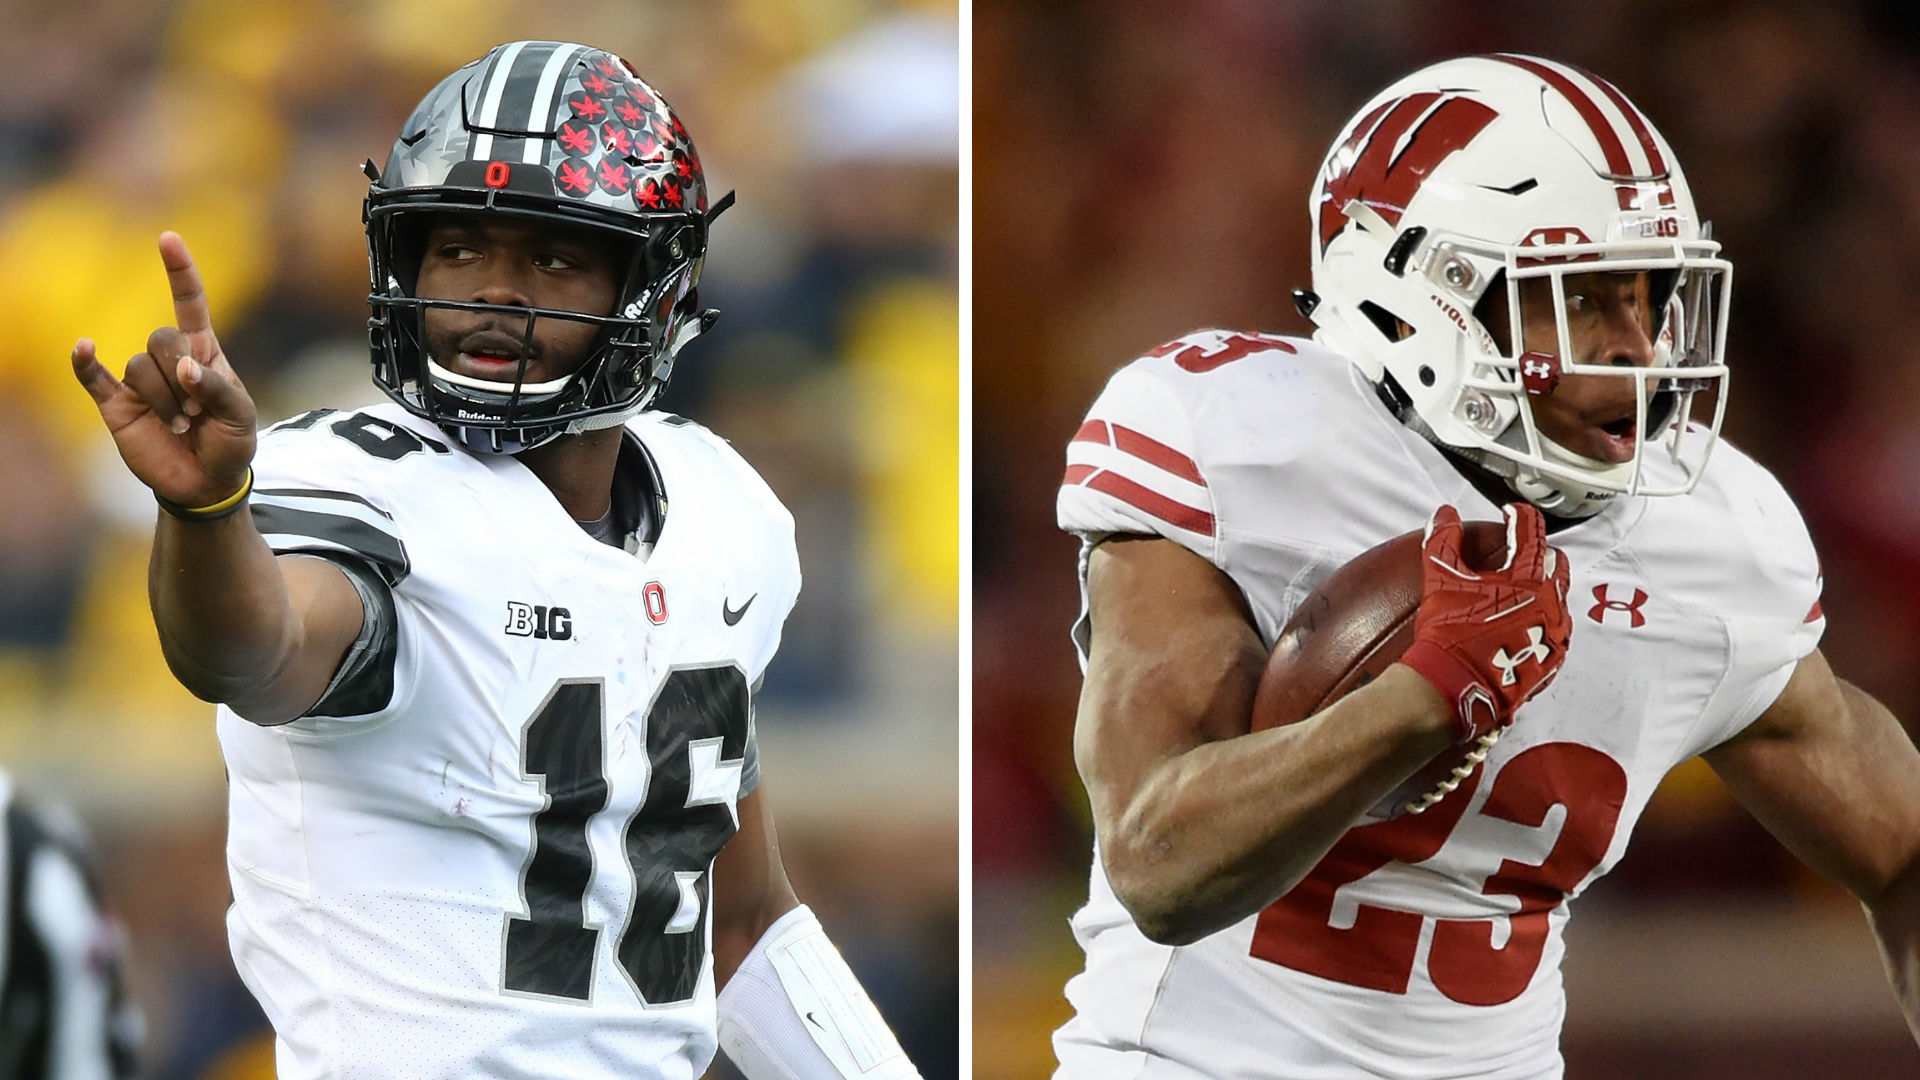 Big Ten Championship: A lot on the line for both teams